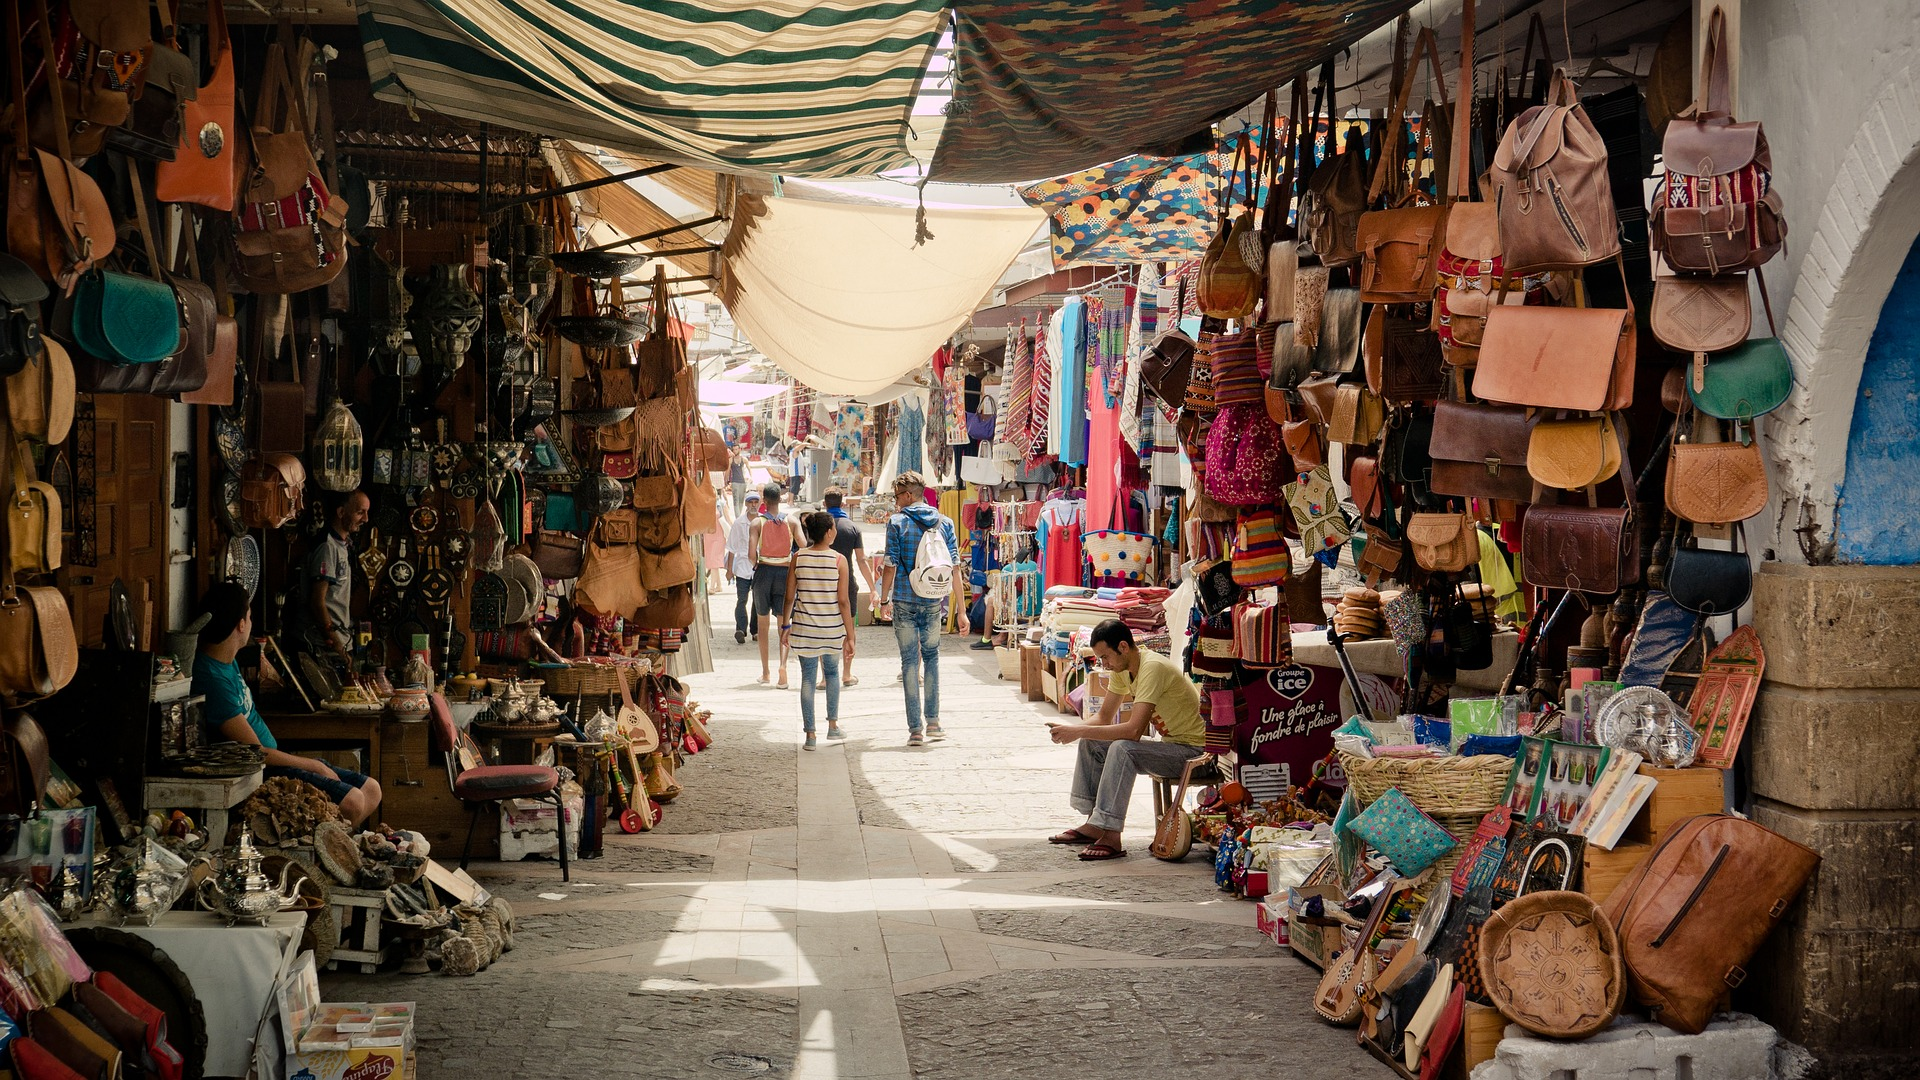 Souk in Fes - home to the oldest medina in North Africa